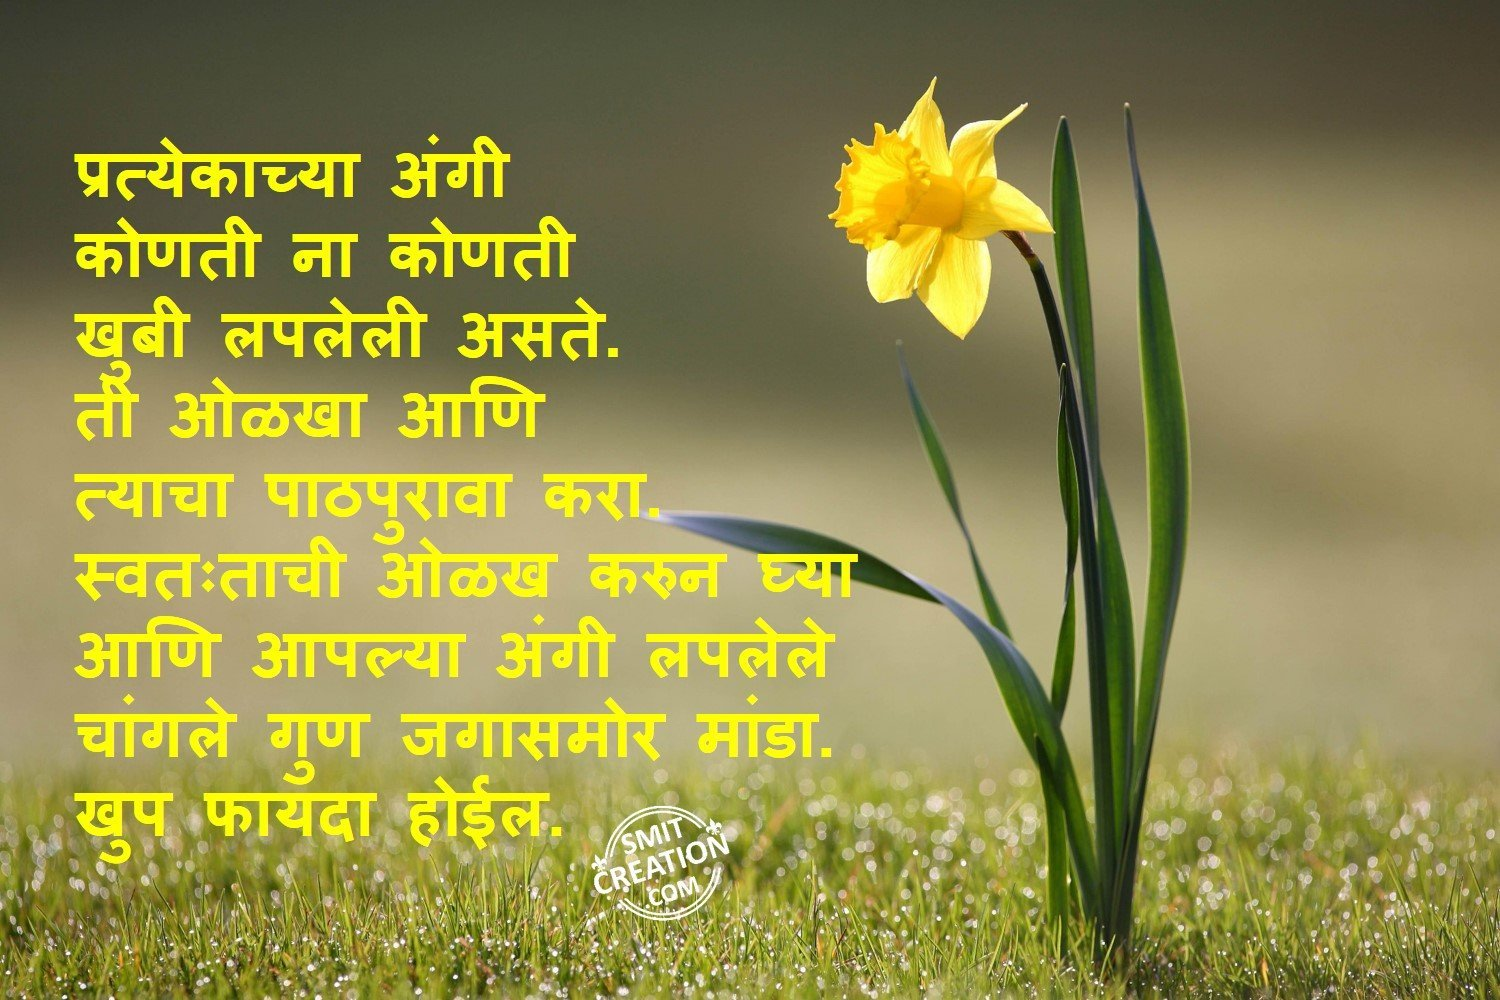 Rainy Day Wallpaper With Quotes In Hindi Marathi Suvichar मराठी सुविचार Pictures And Graphics